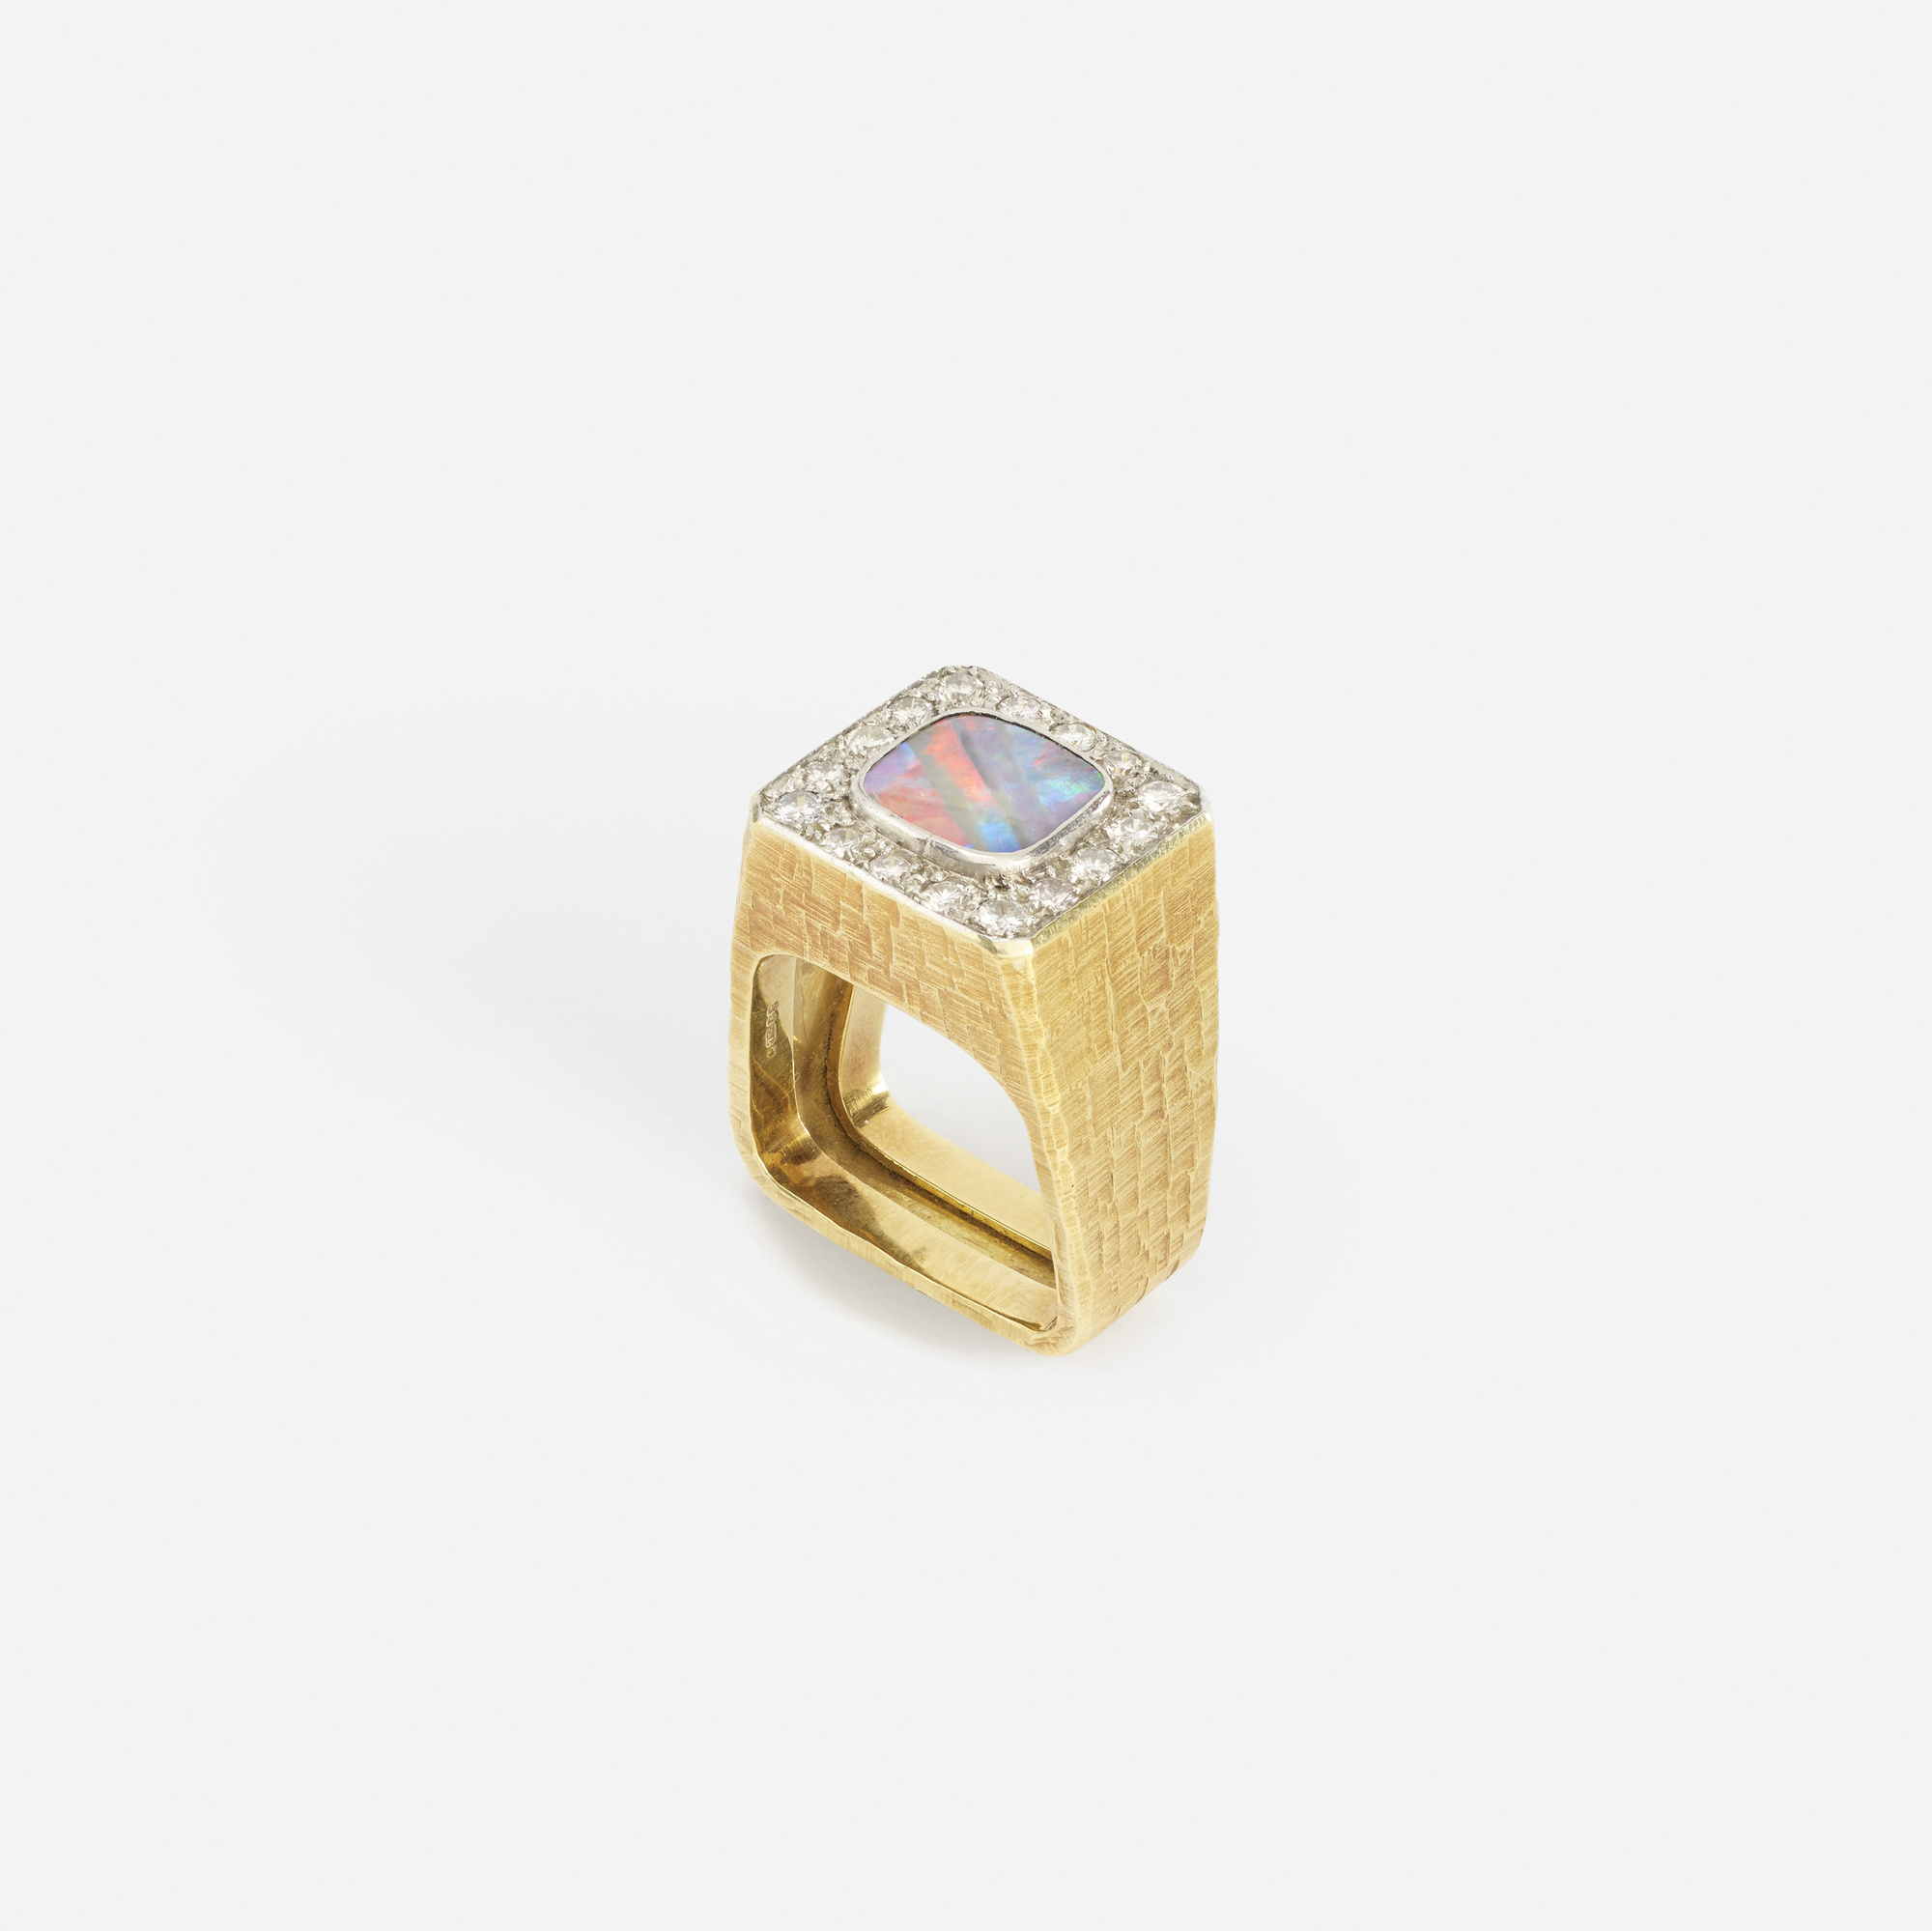 134: Andrew Grima / A gold, black opal and diamond ring (1 of 2)